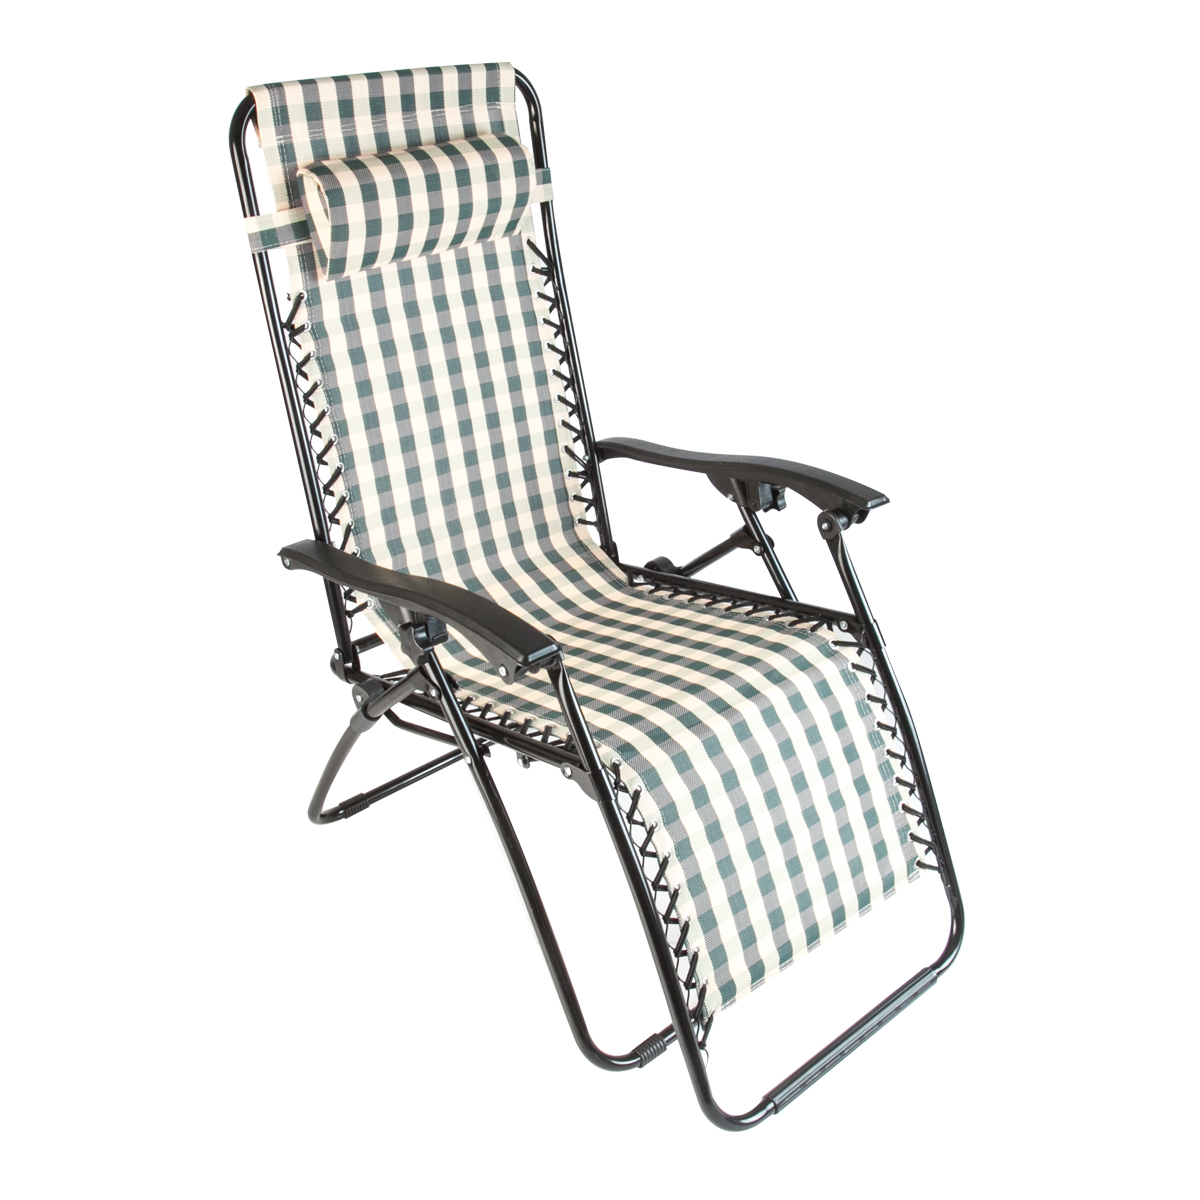 2 Beach Zero Gravity Folding Lounge Chair Recliner Patio Pool Stripe Outdoor New